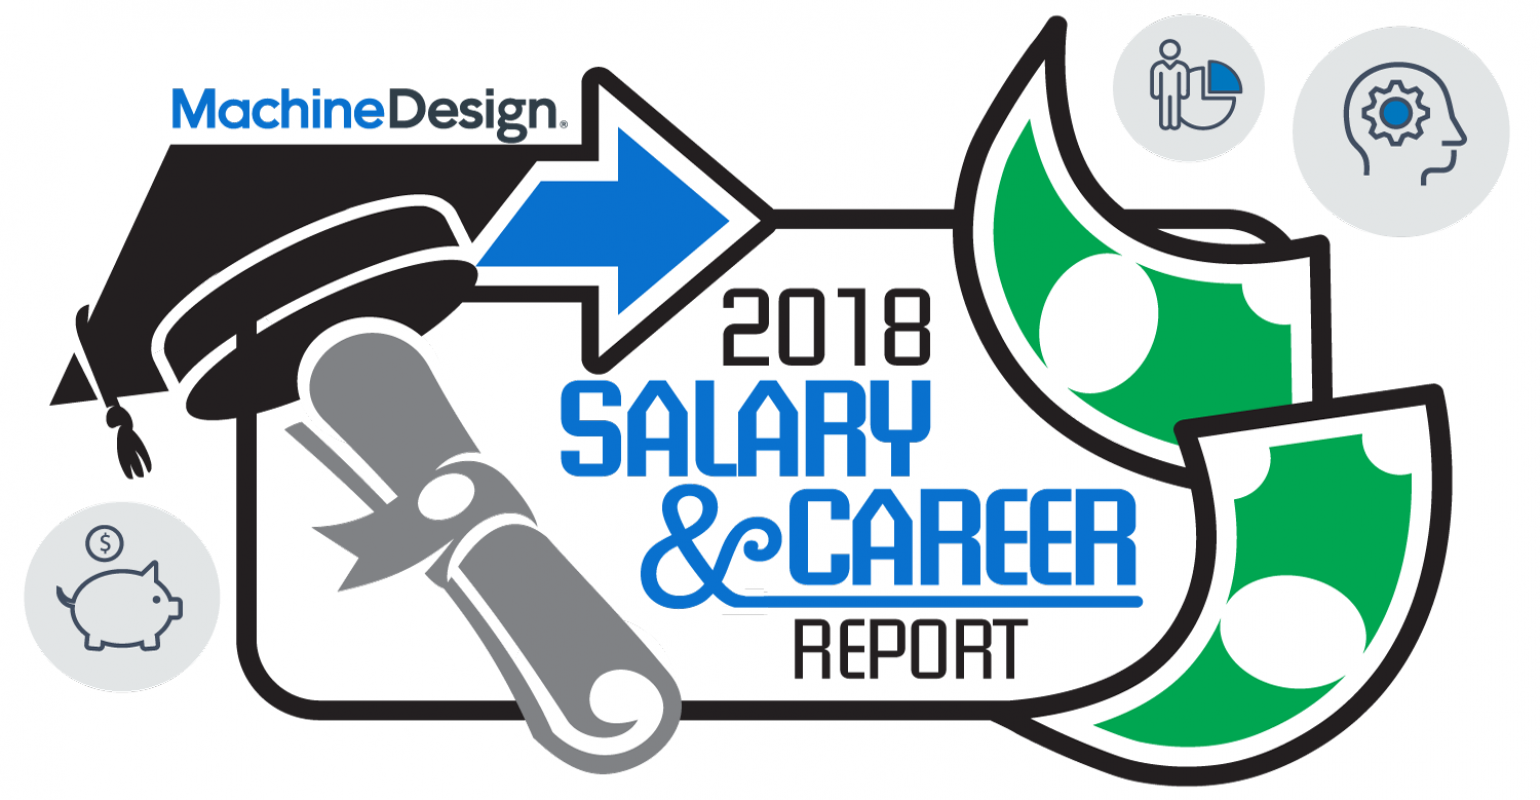 Mining engineering salary in clipart clip royalty free library Are Engineers Compensated Enough for Their Work? | Machine Design clip royalty free library